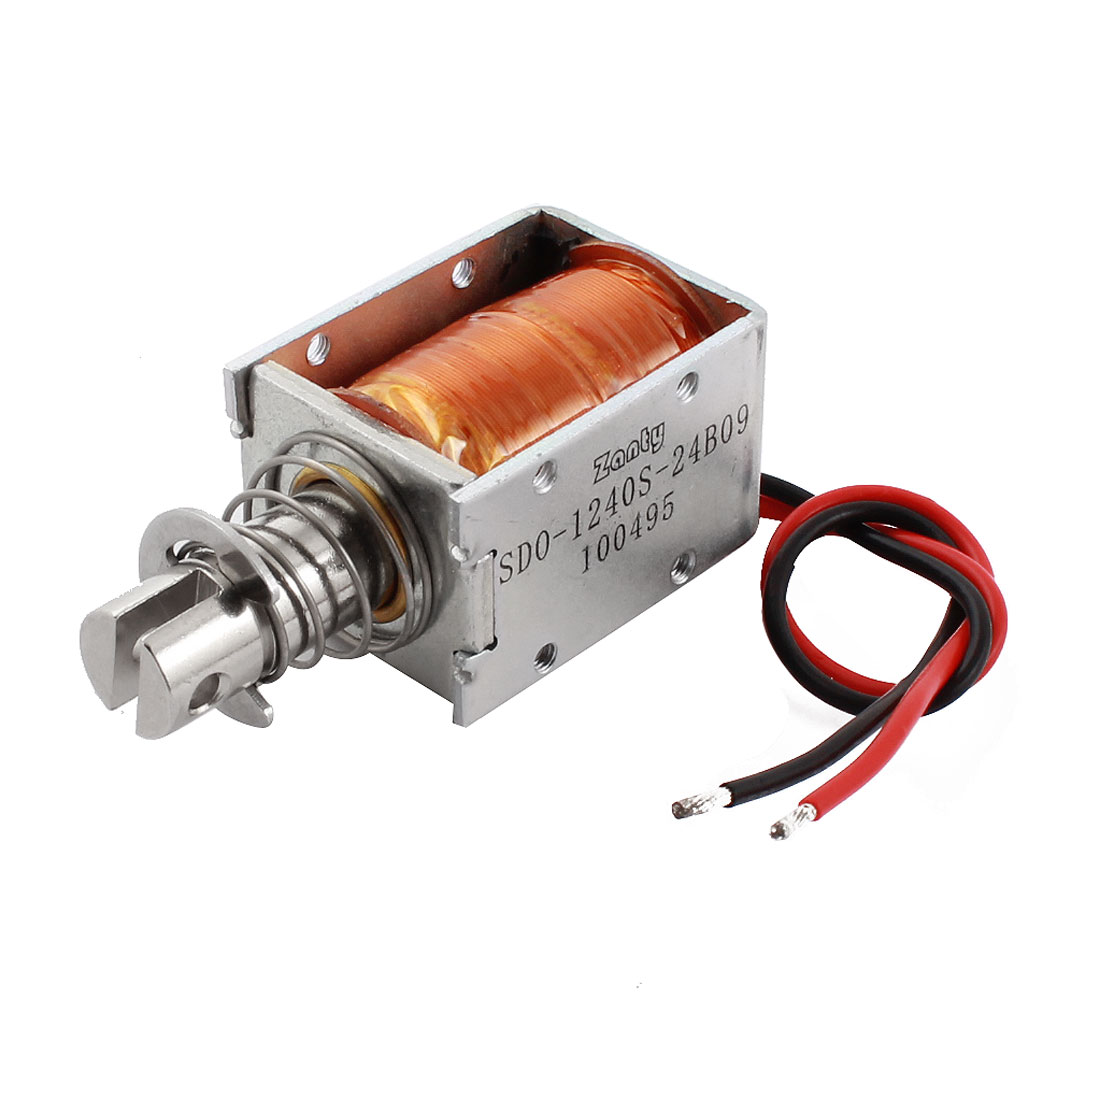 DC 24V 900g Force 10mm Stroke Linear Push Pull Type Solenoid Electromagnet